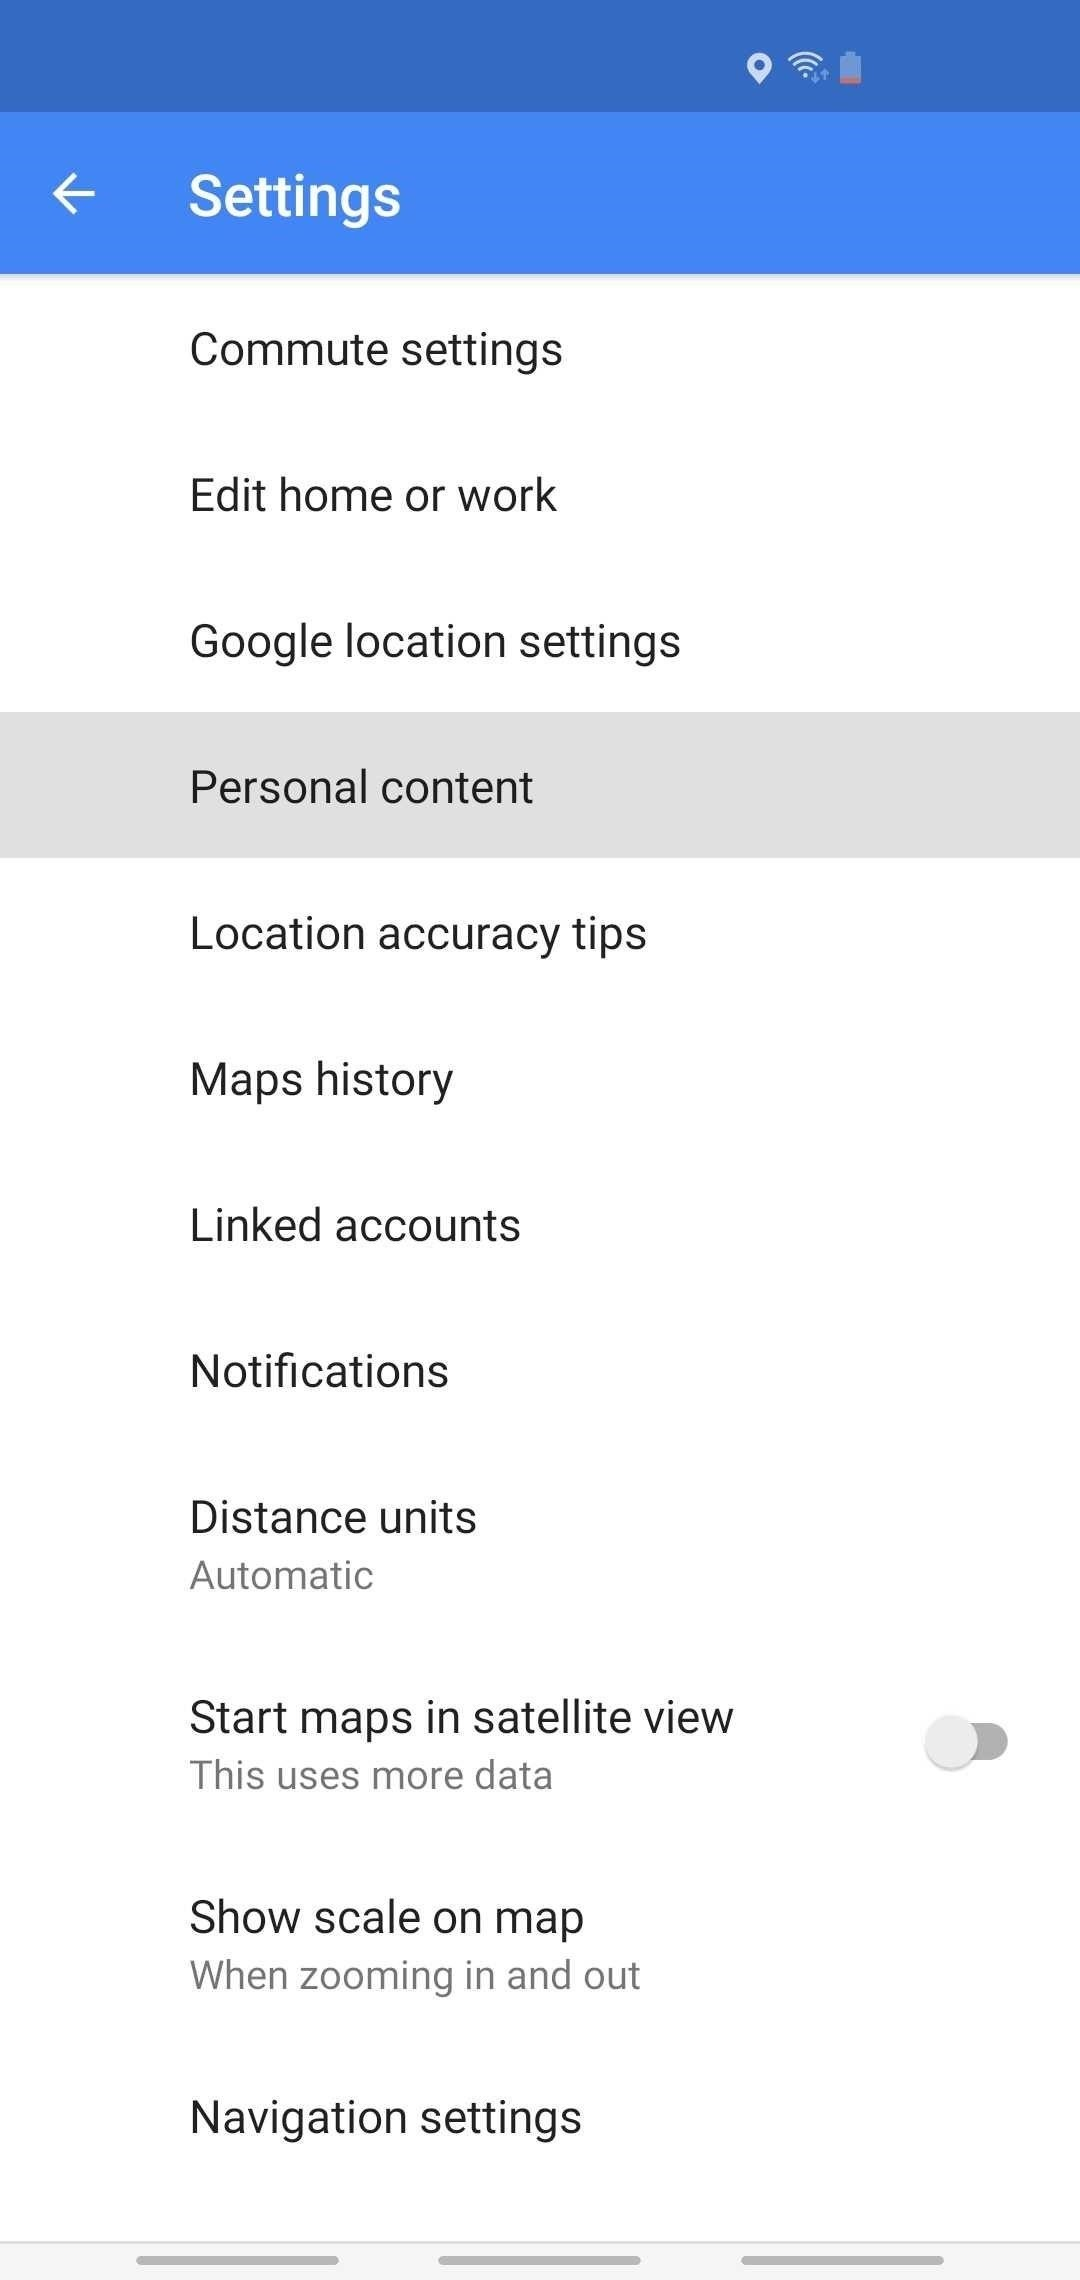 How to View & Manage Your Location History on Google Maps to Track Where You've Been & What You We're Doing